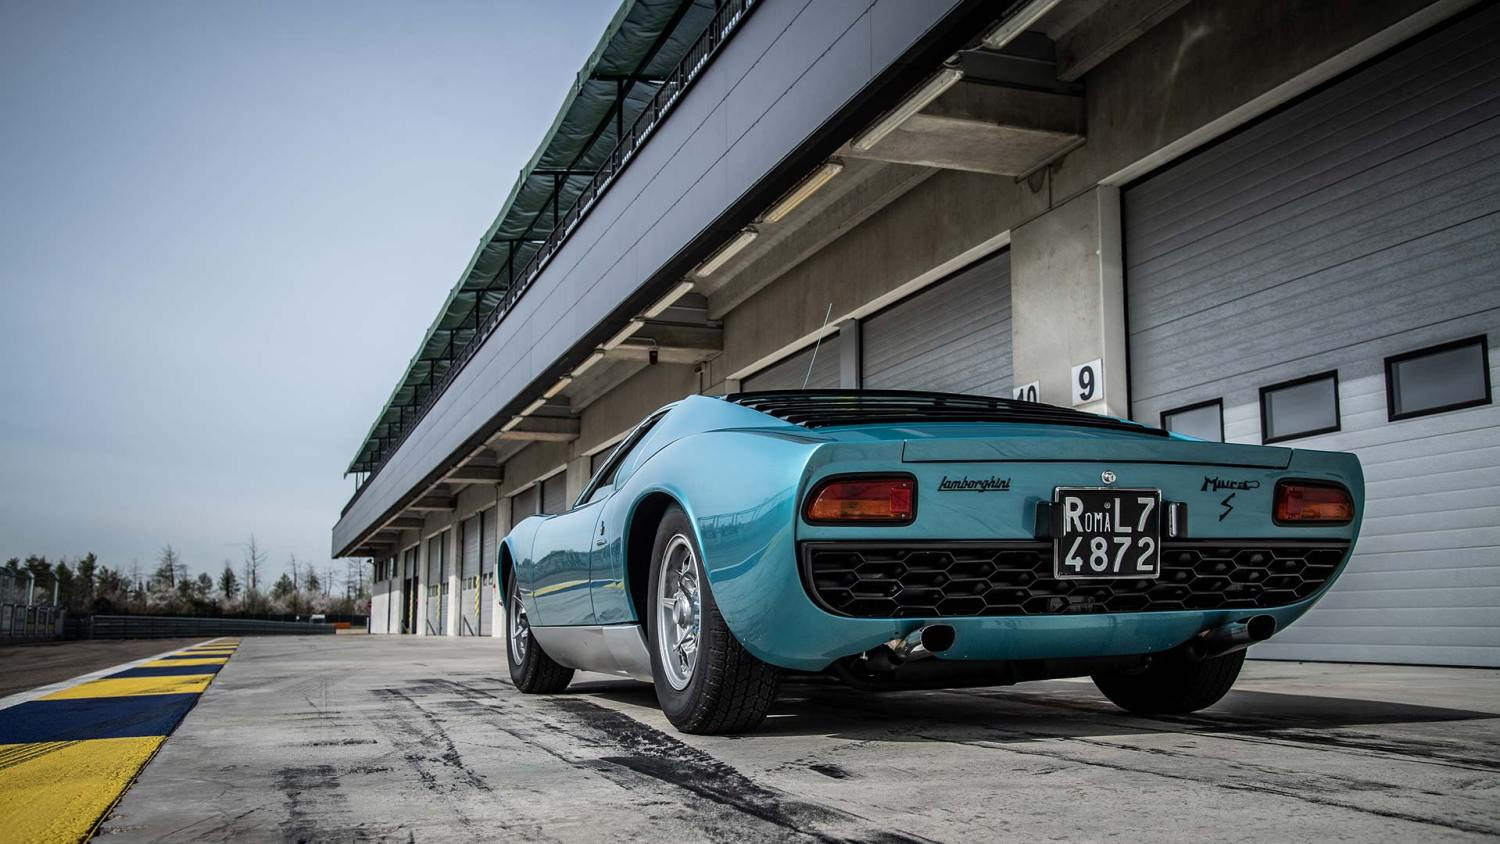 Little Tony's Lamborghini Miura restored by Polo Storico